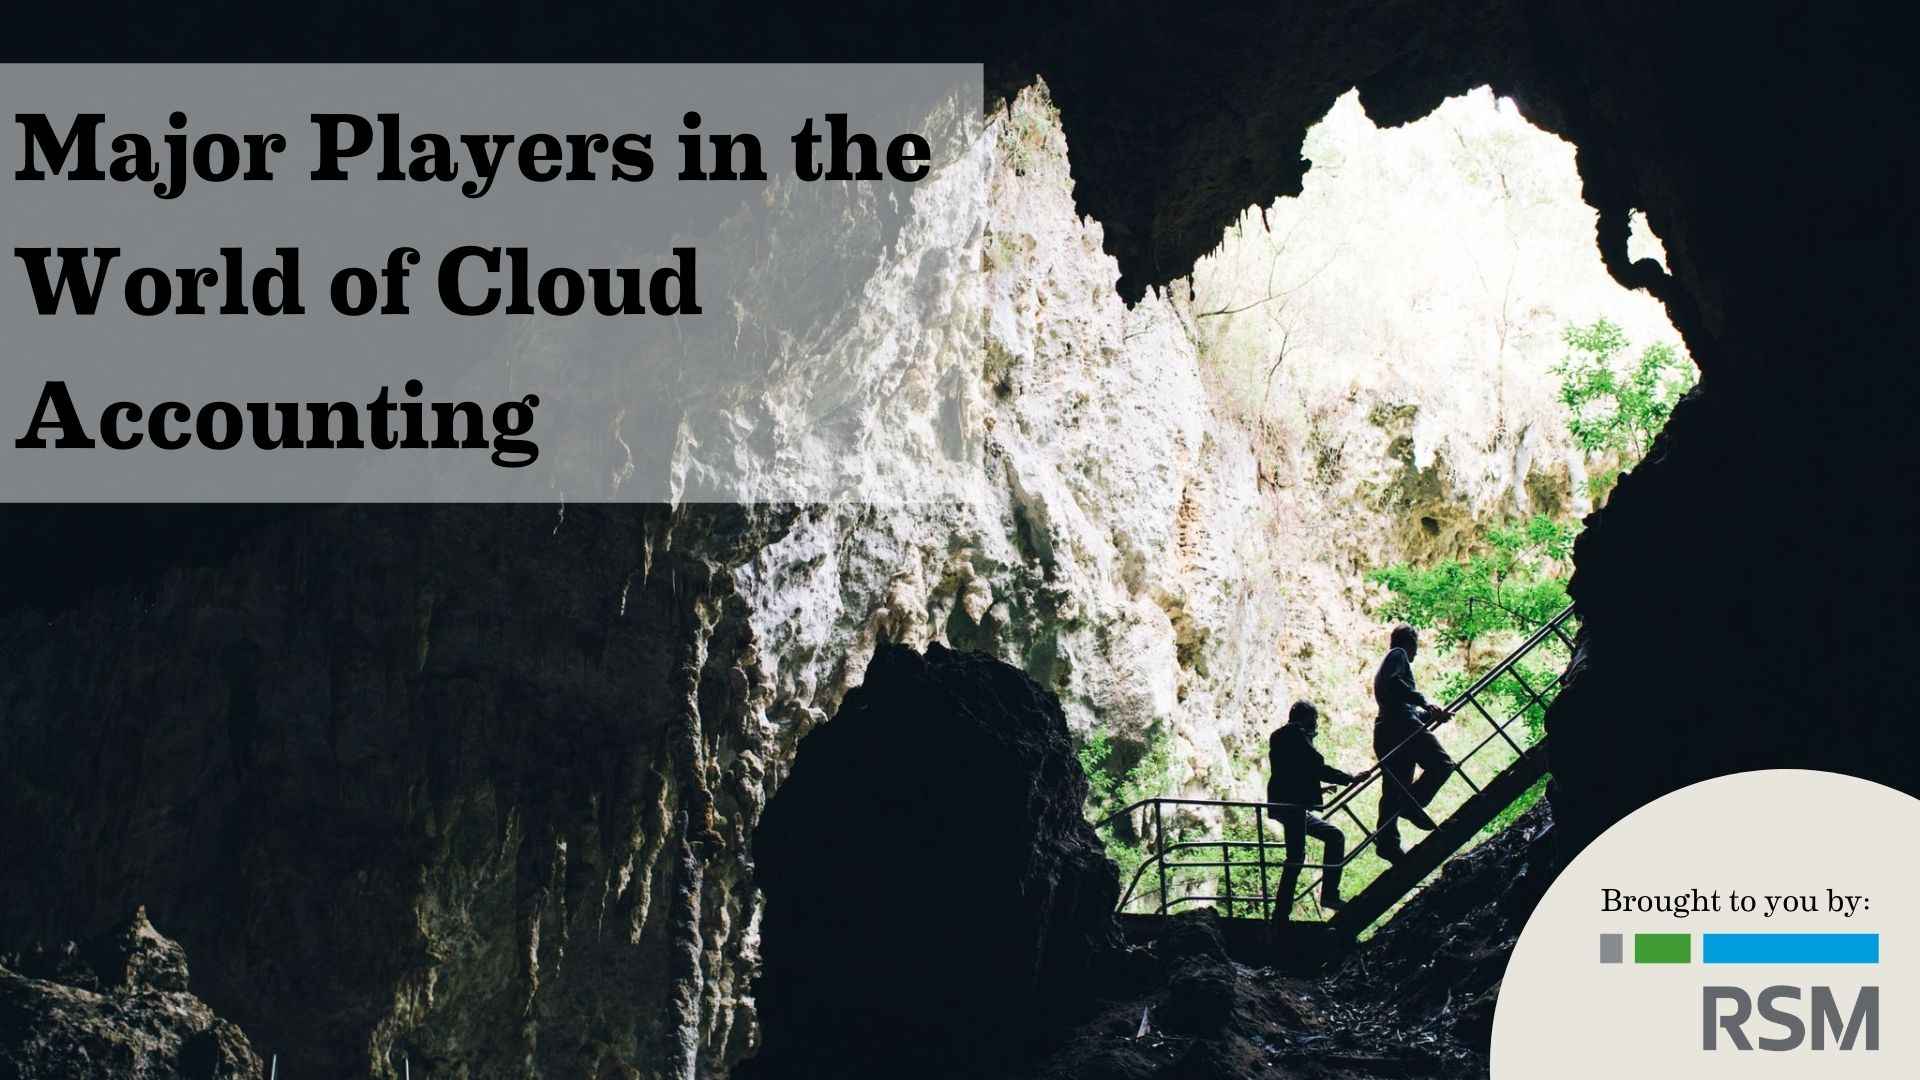 RSM Australia: Major Players in the World of Cloud Accounting